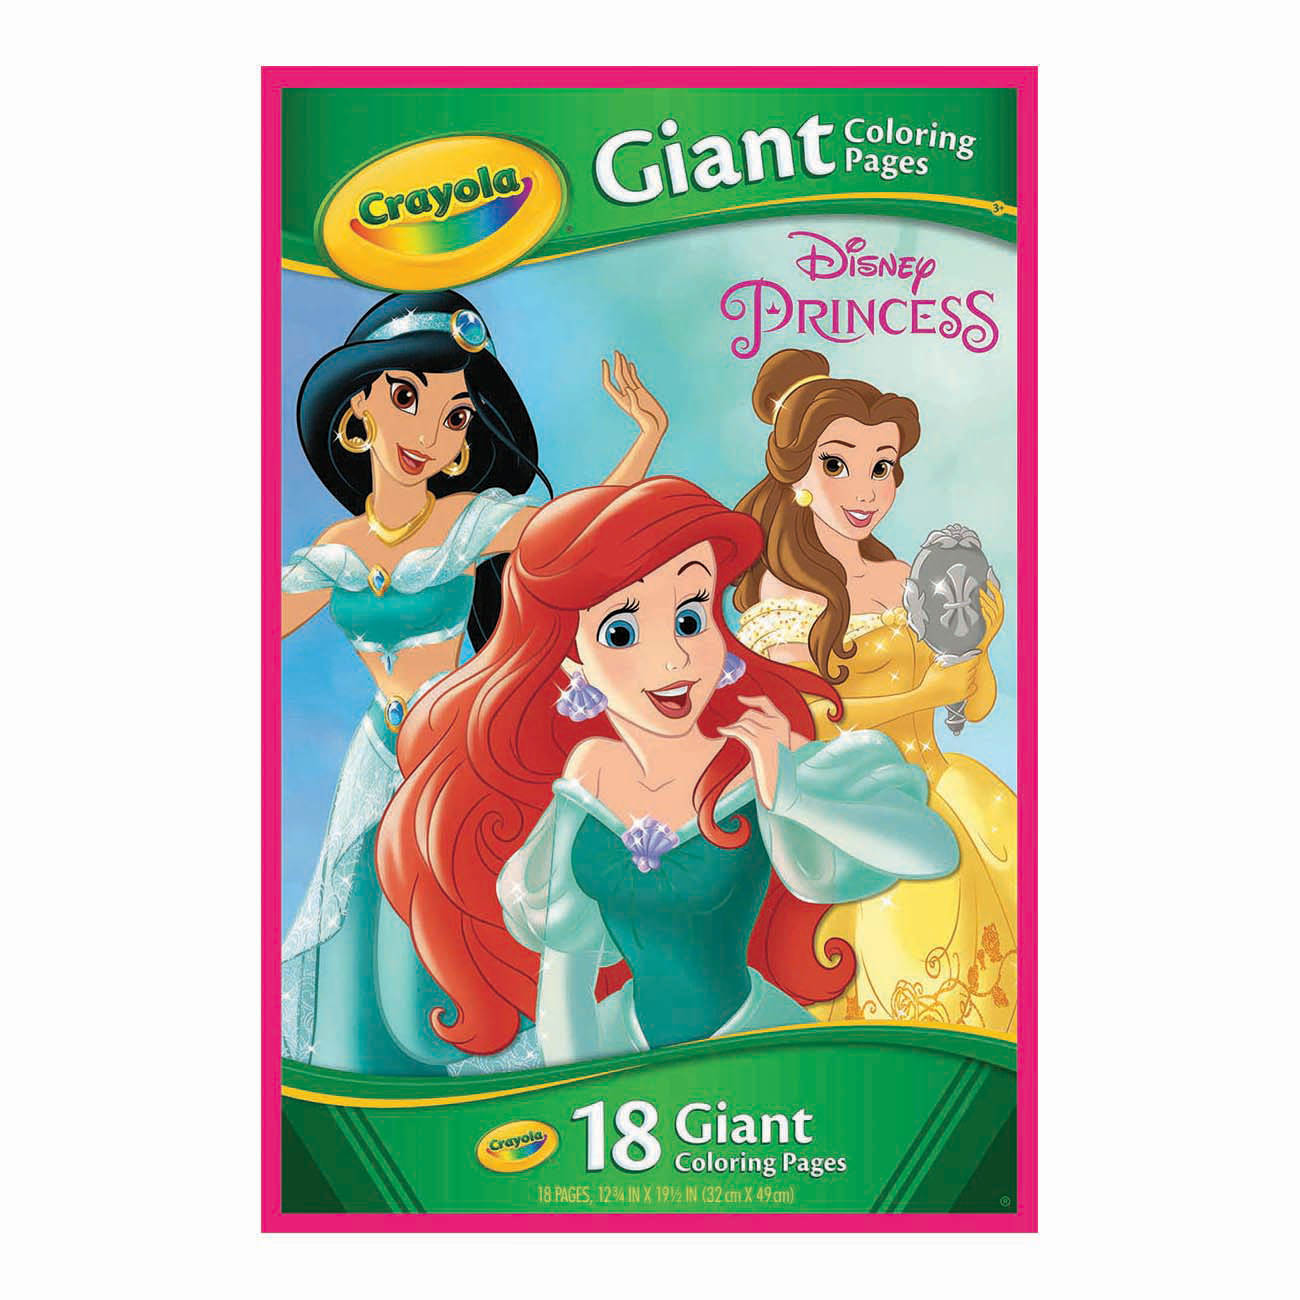 Crayola Giant Coloring Pages Disney Princess At Toys R Us